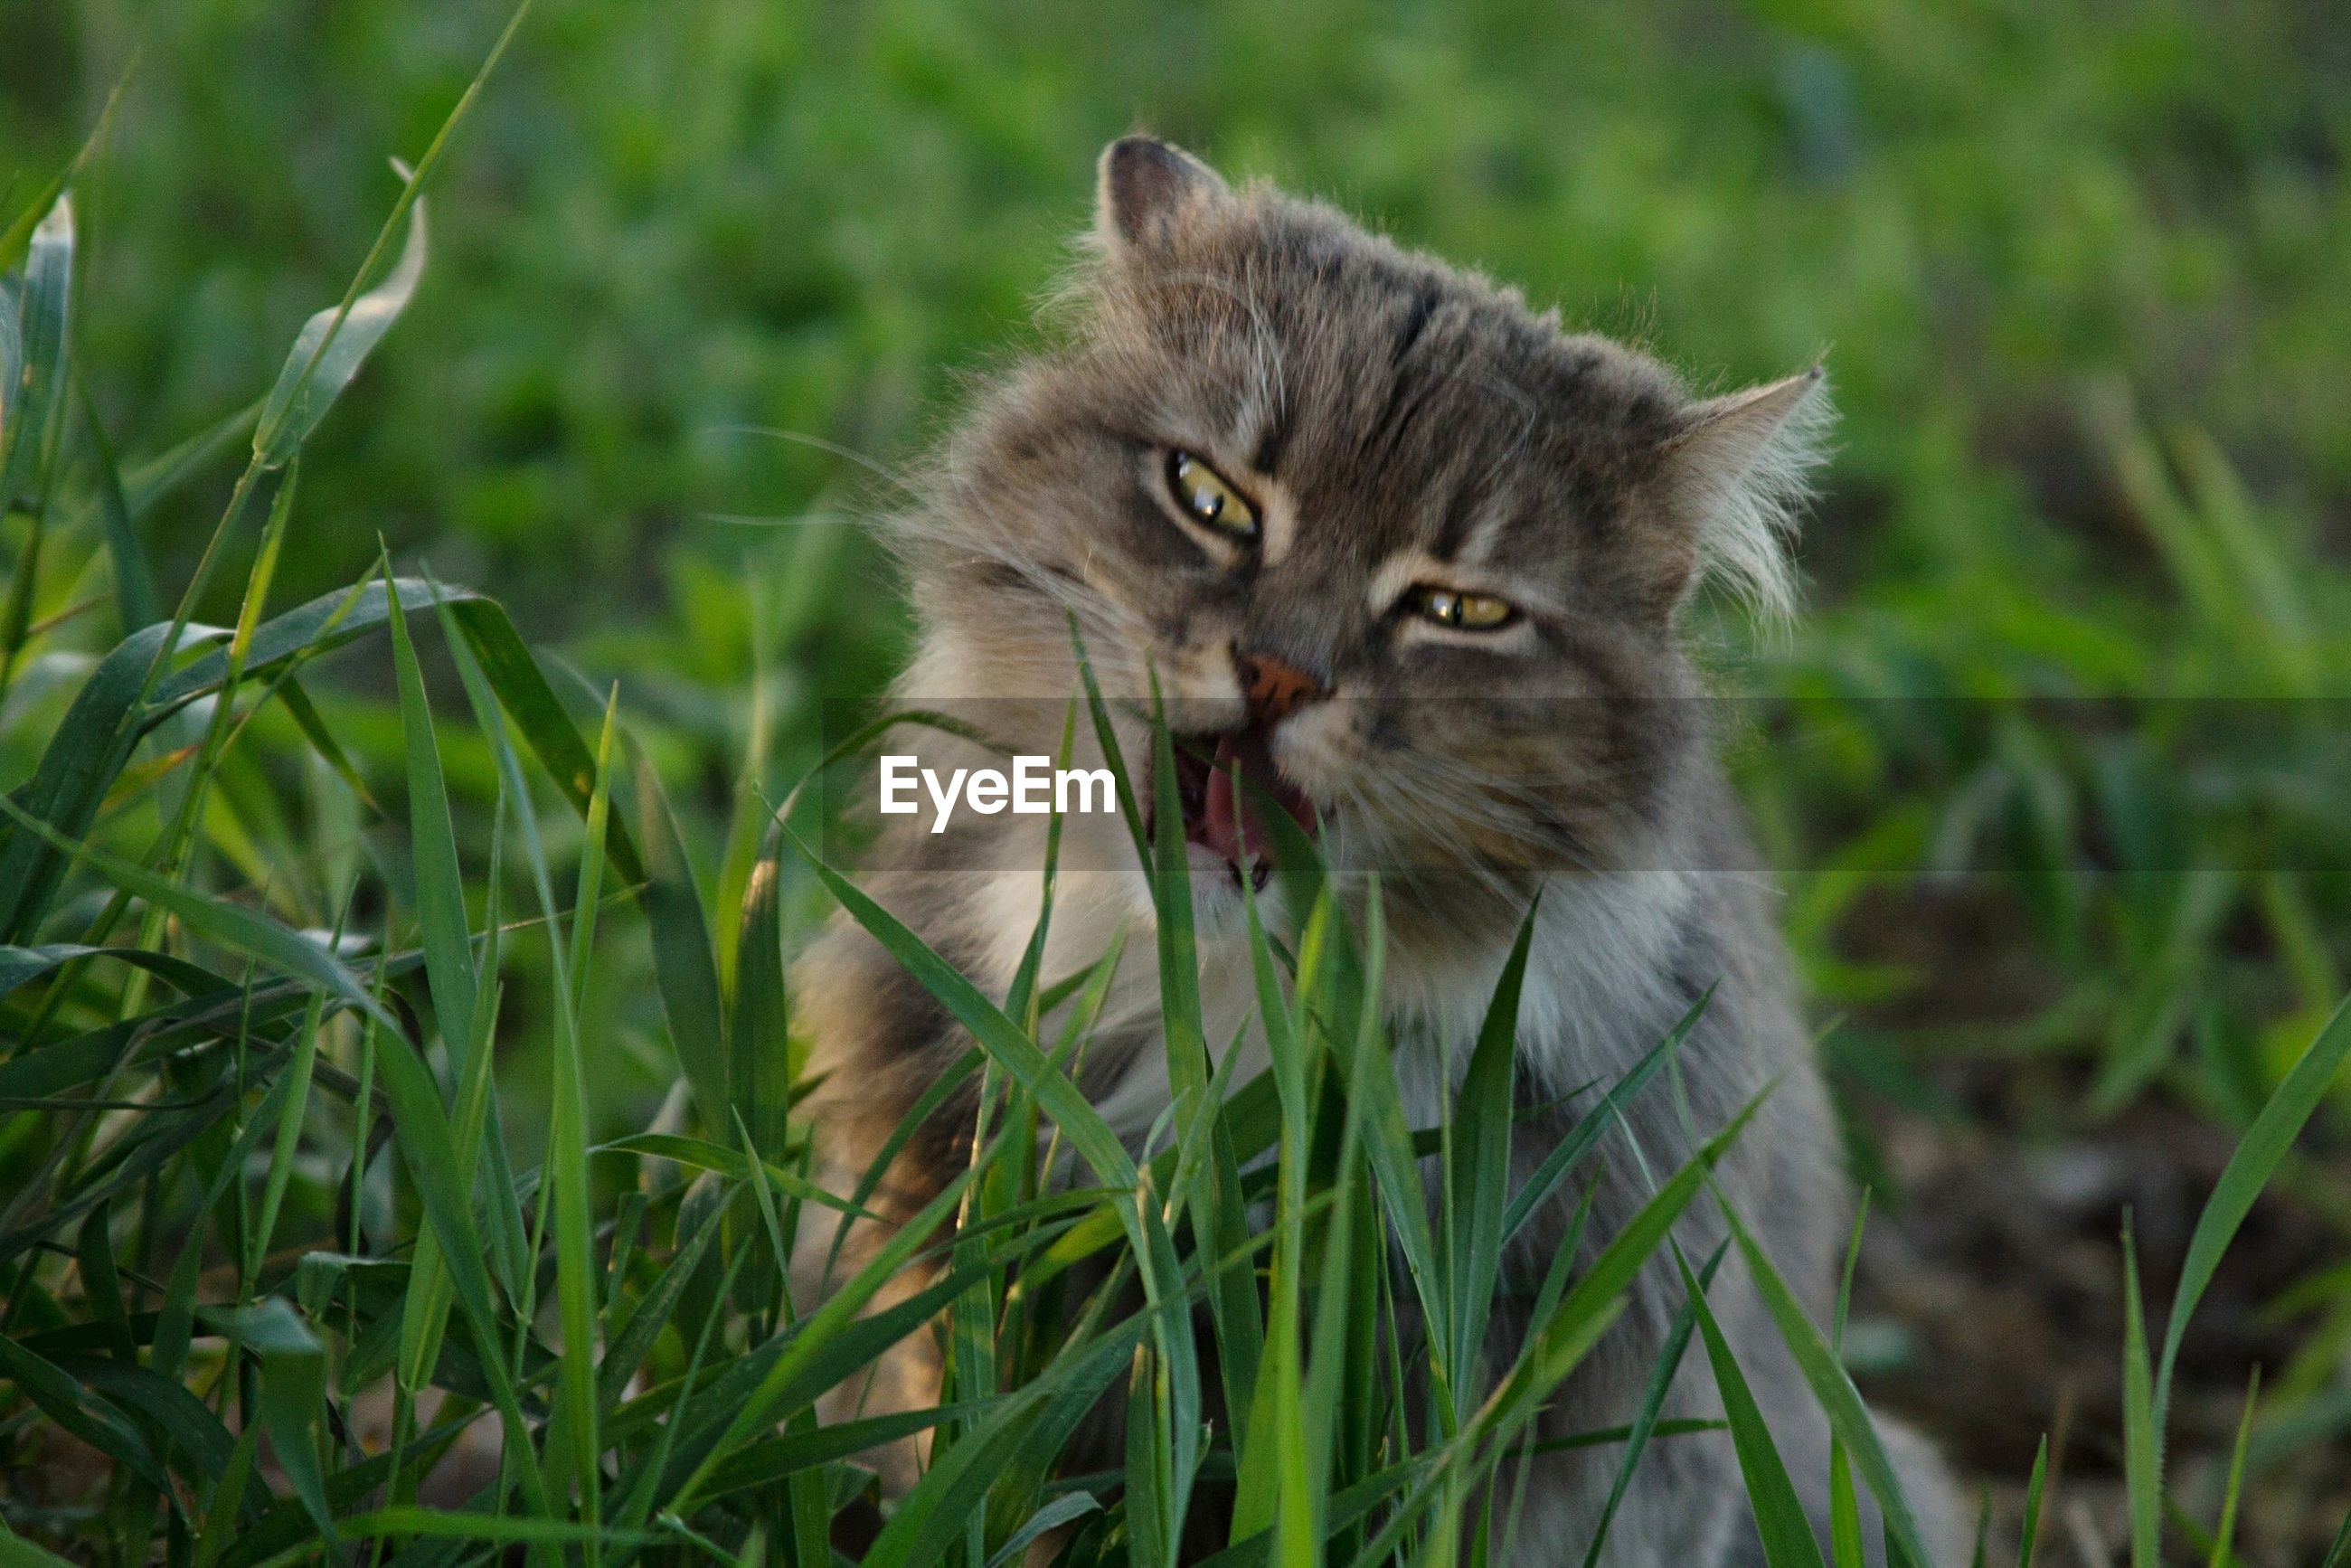 animal themes, one animal, grass, mammal, field, focus on foreground, wildlife, pets, portrait, animals in the wild, close-up, whisker, domestic cat, looking at camera, grassy, plant, sitting, domestic animals, nature, feline